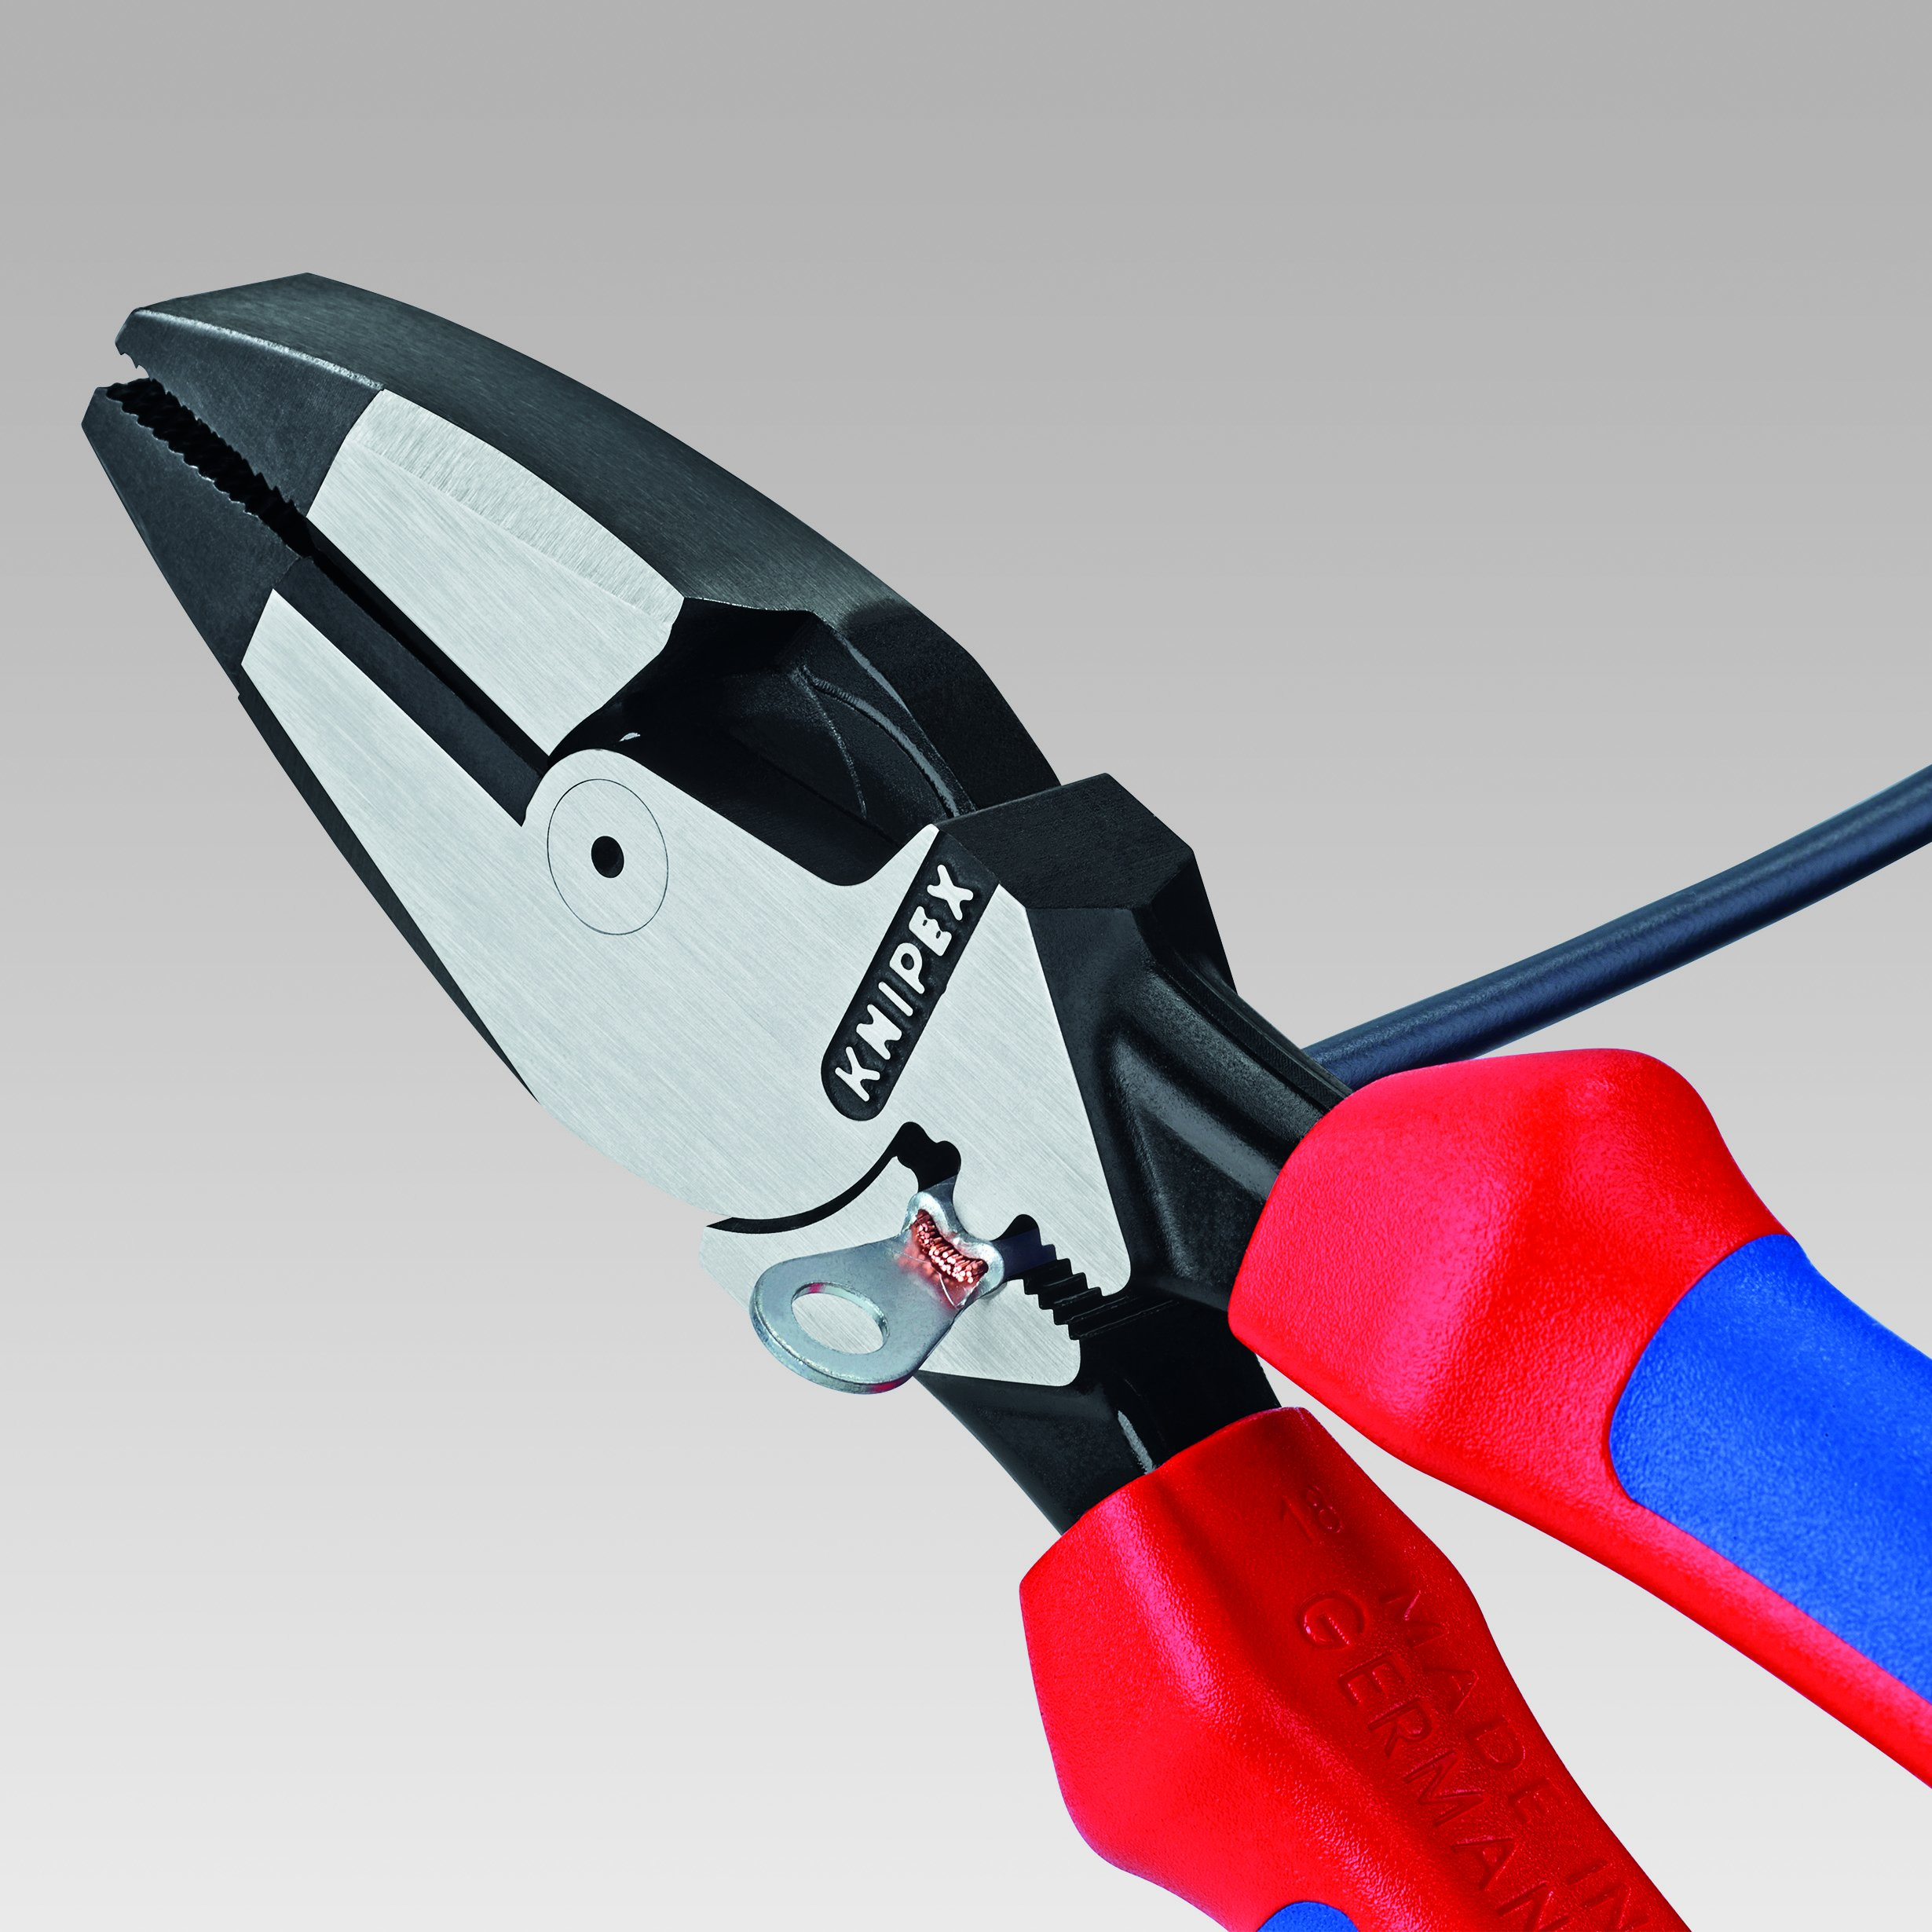 Knipex Tools 09 12 240 T BKA 9 1/4'' Ultra-High Leverage Lineman's Pliers with Fish Tape Puller, Crimper, Tether Attachment by KNIPEX Tools (Image #4)